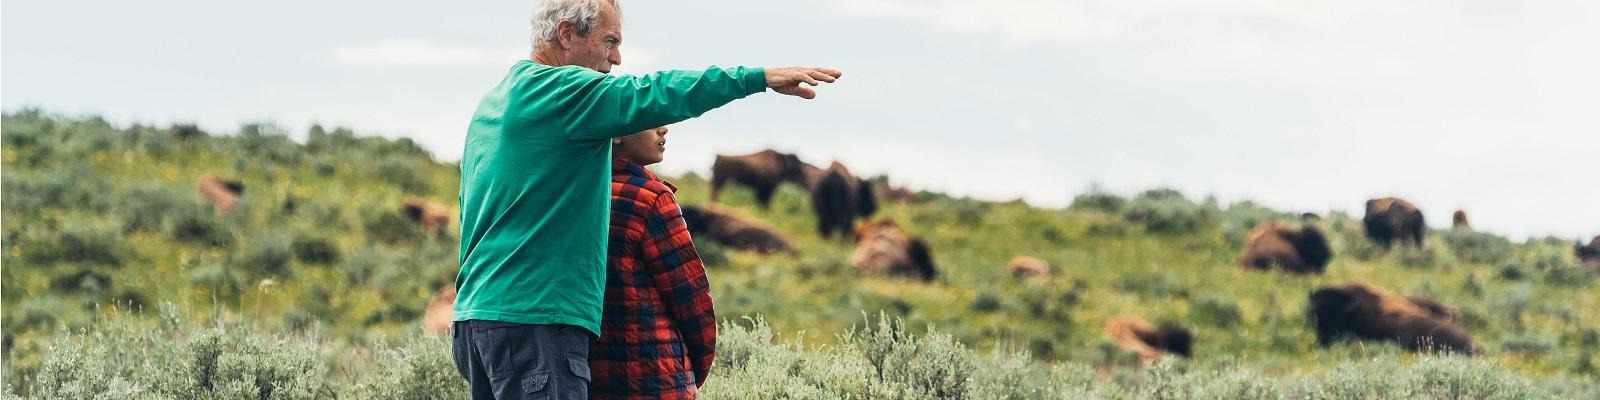 Travelers looking out over grazing bison in Yellowstone National Park